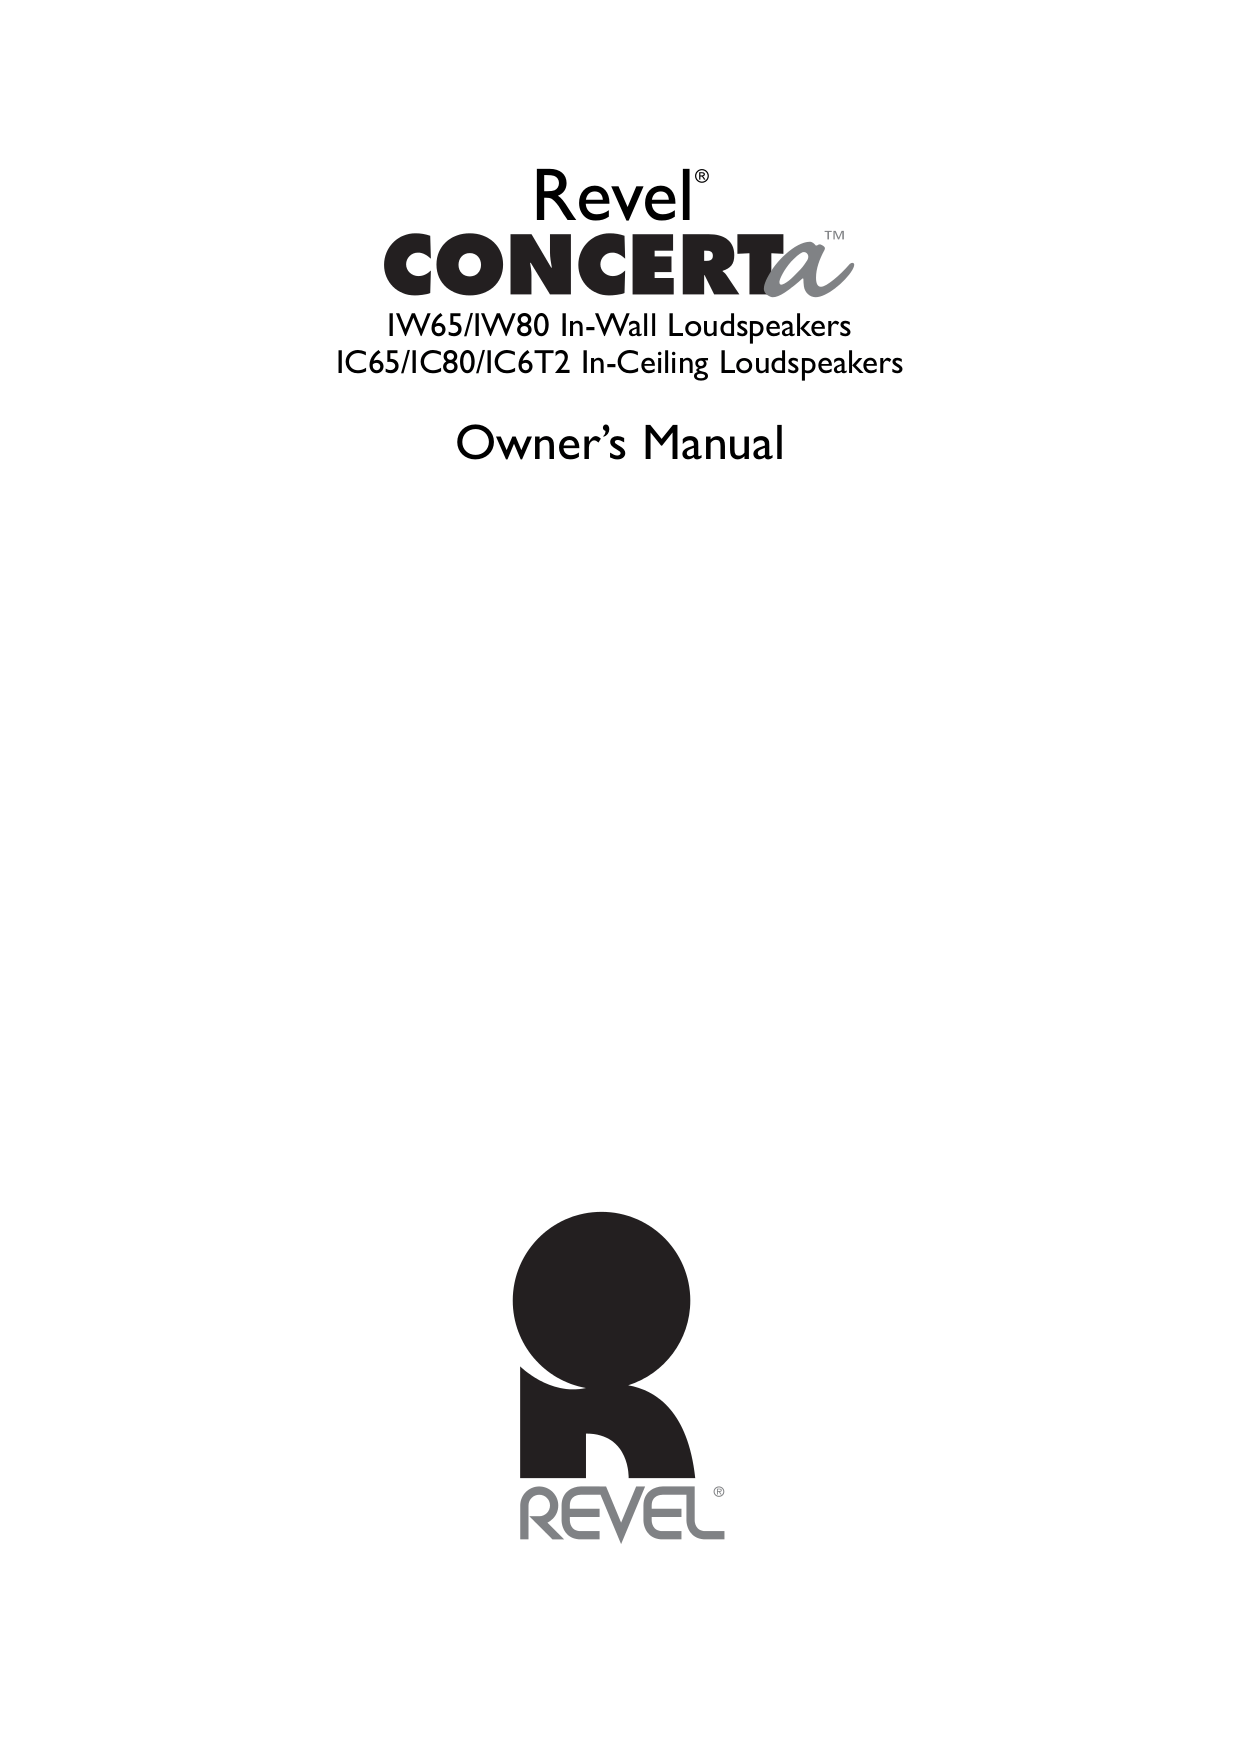 Download free pdf for Revel Concerta IW65 Speaker manual